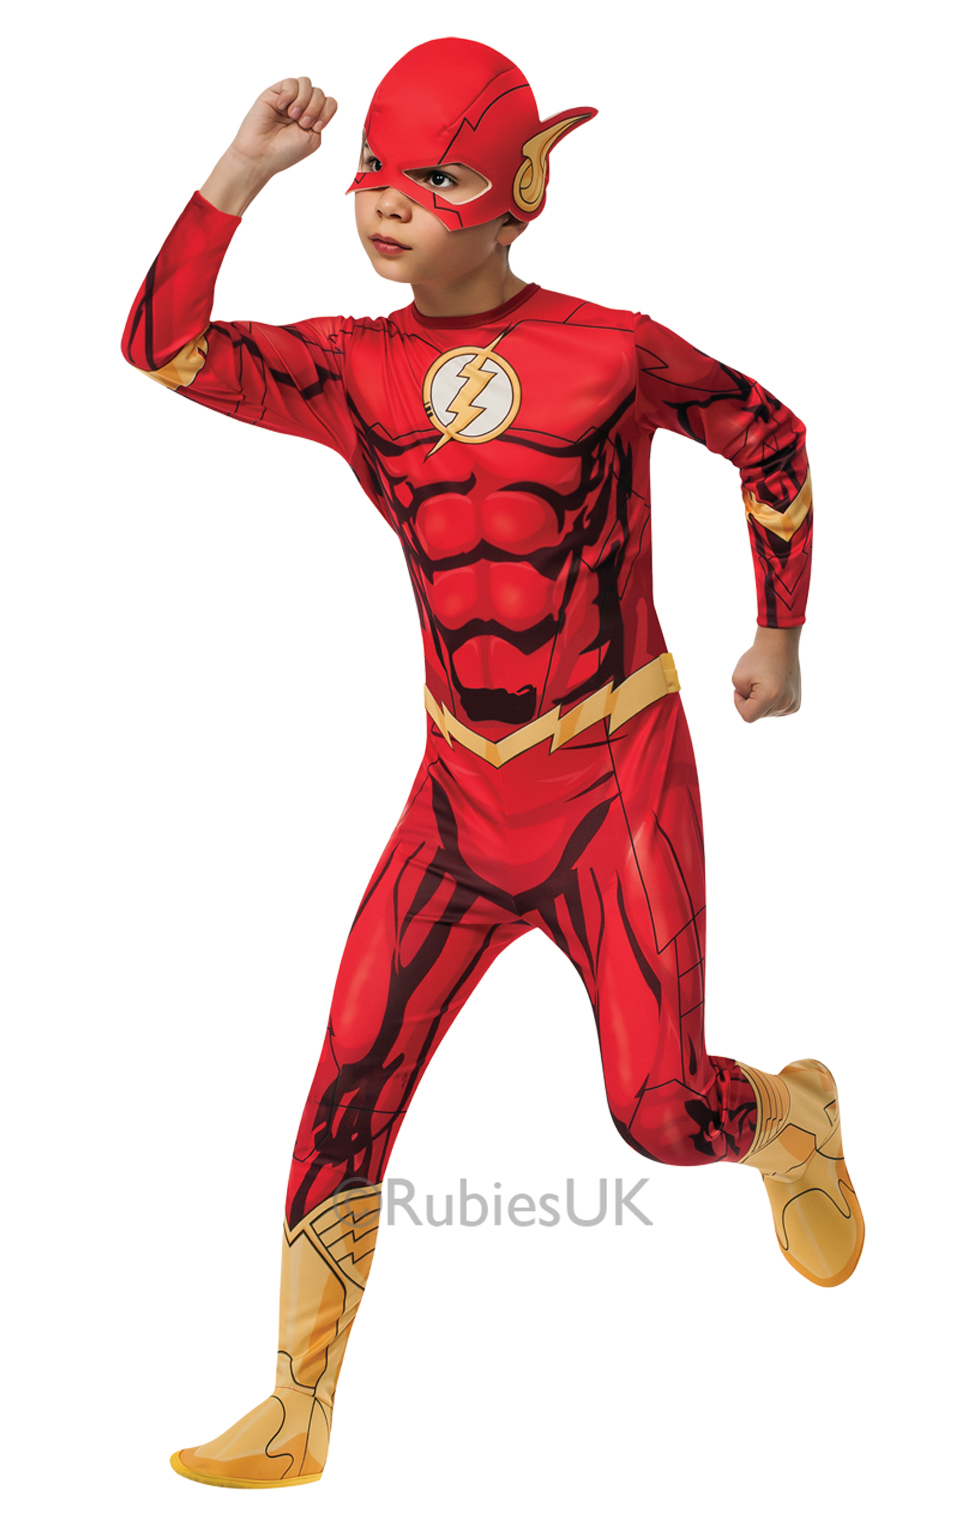 Child Superhero The Flash Boys Comic Book Week Fancy Dress Kids Party Costume  sc 1 st  Wonderland Party & Child Superhero The Flash Boys Comic Book Week Fancy Dress Kids ...